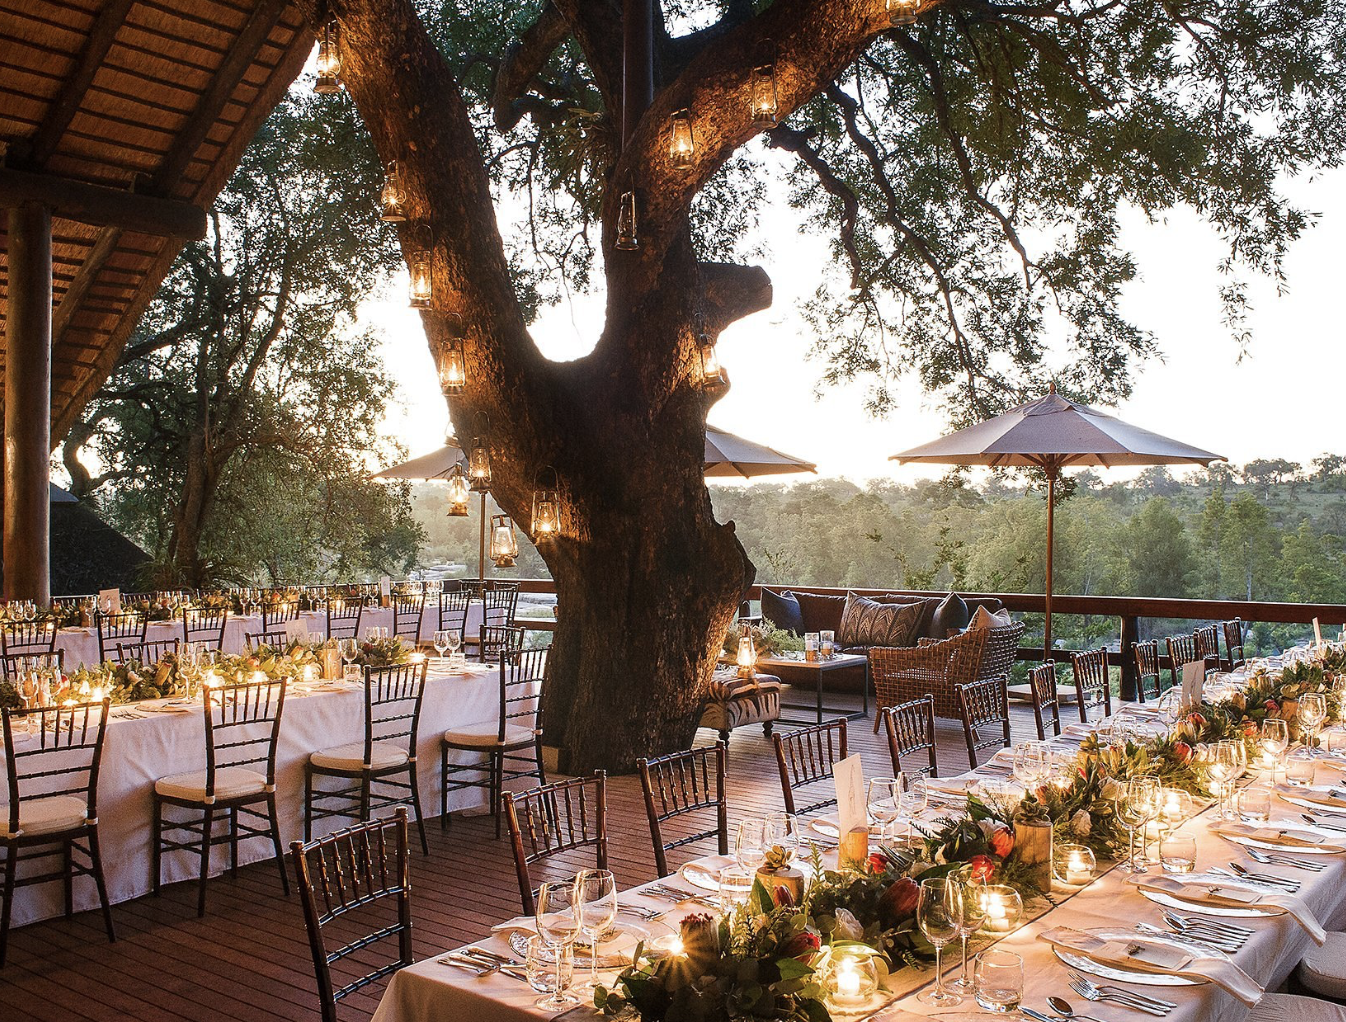 wedding decoration ideas south africa%0A Kyly Zakheim and Ryan Rabin Marry in a Magical Safari Wedding in South  Africa